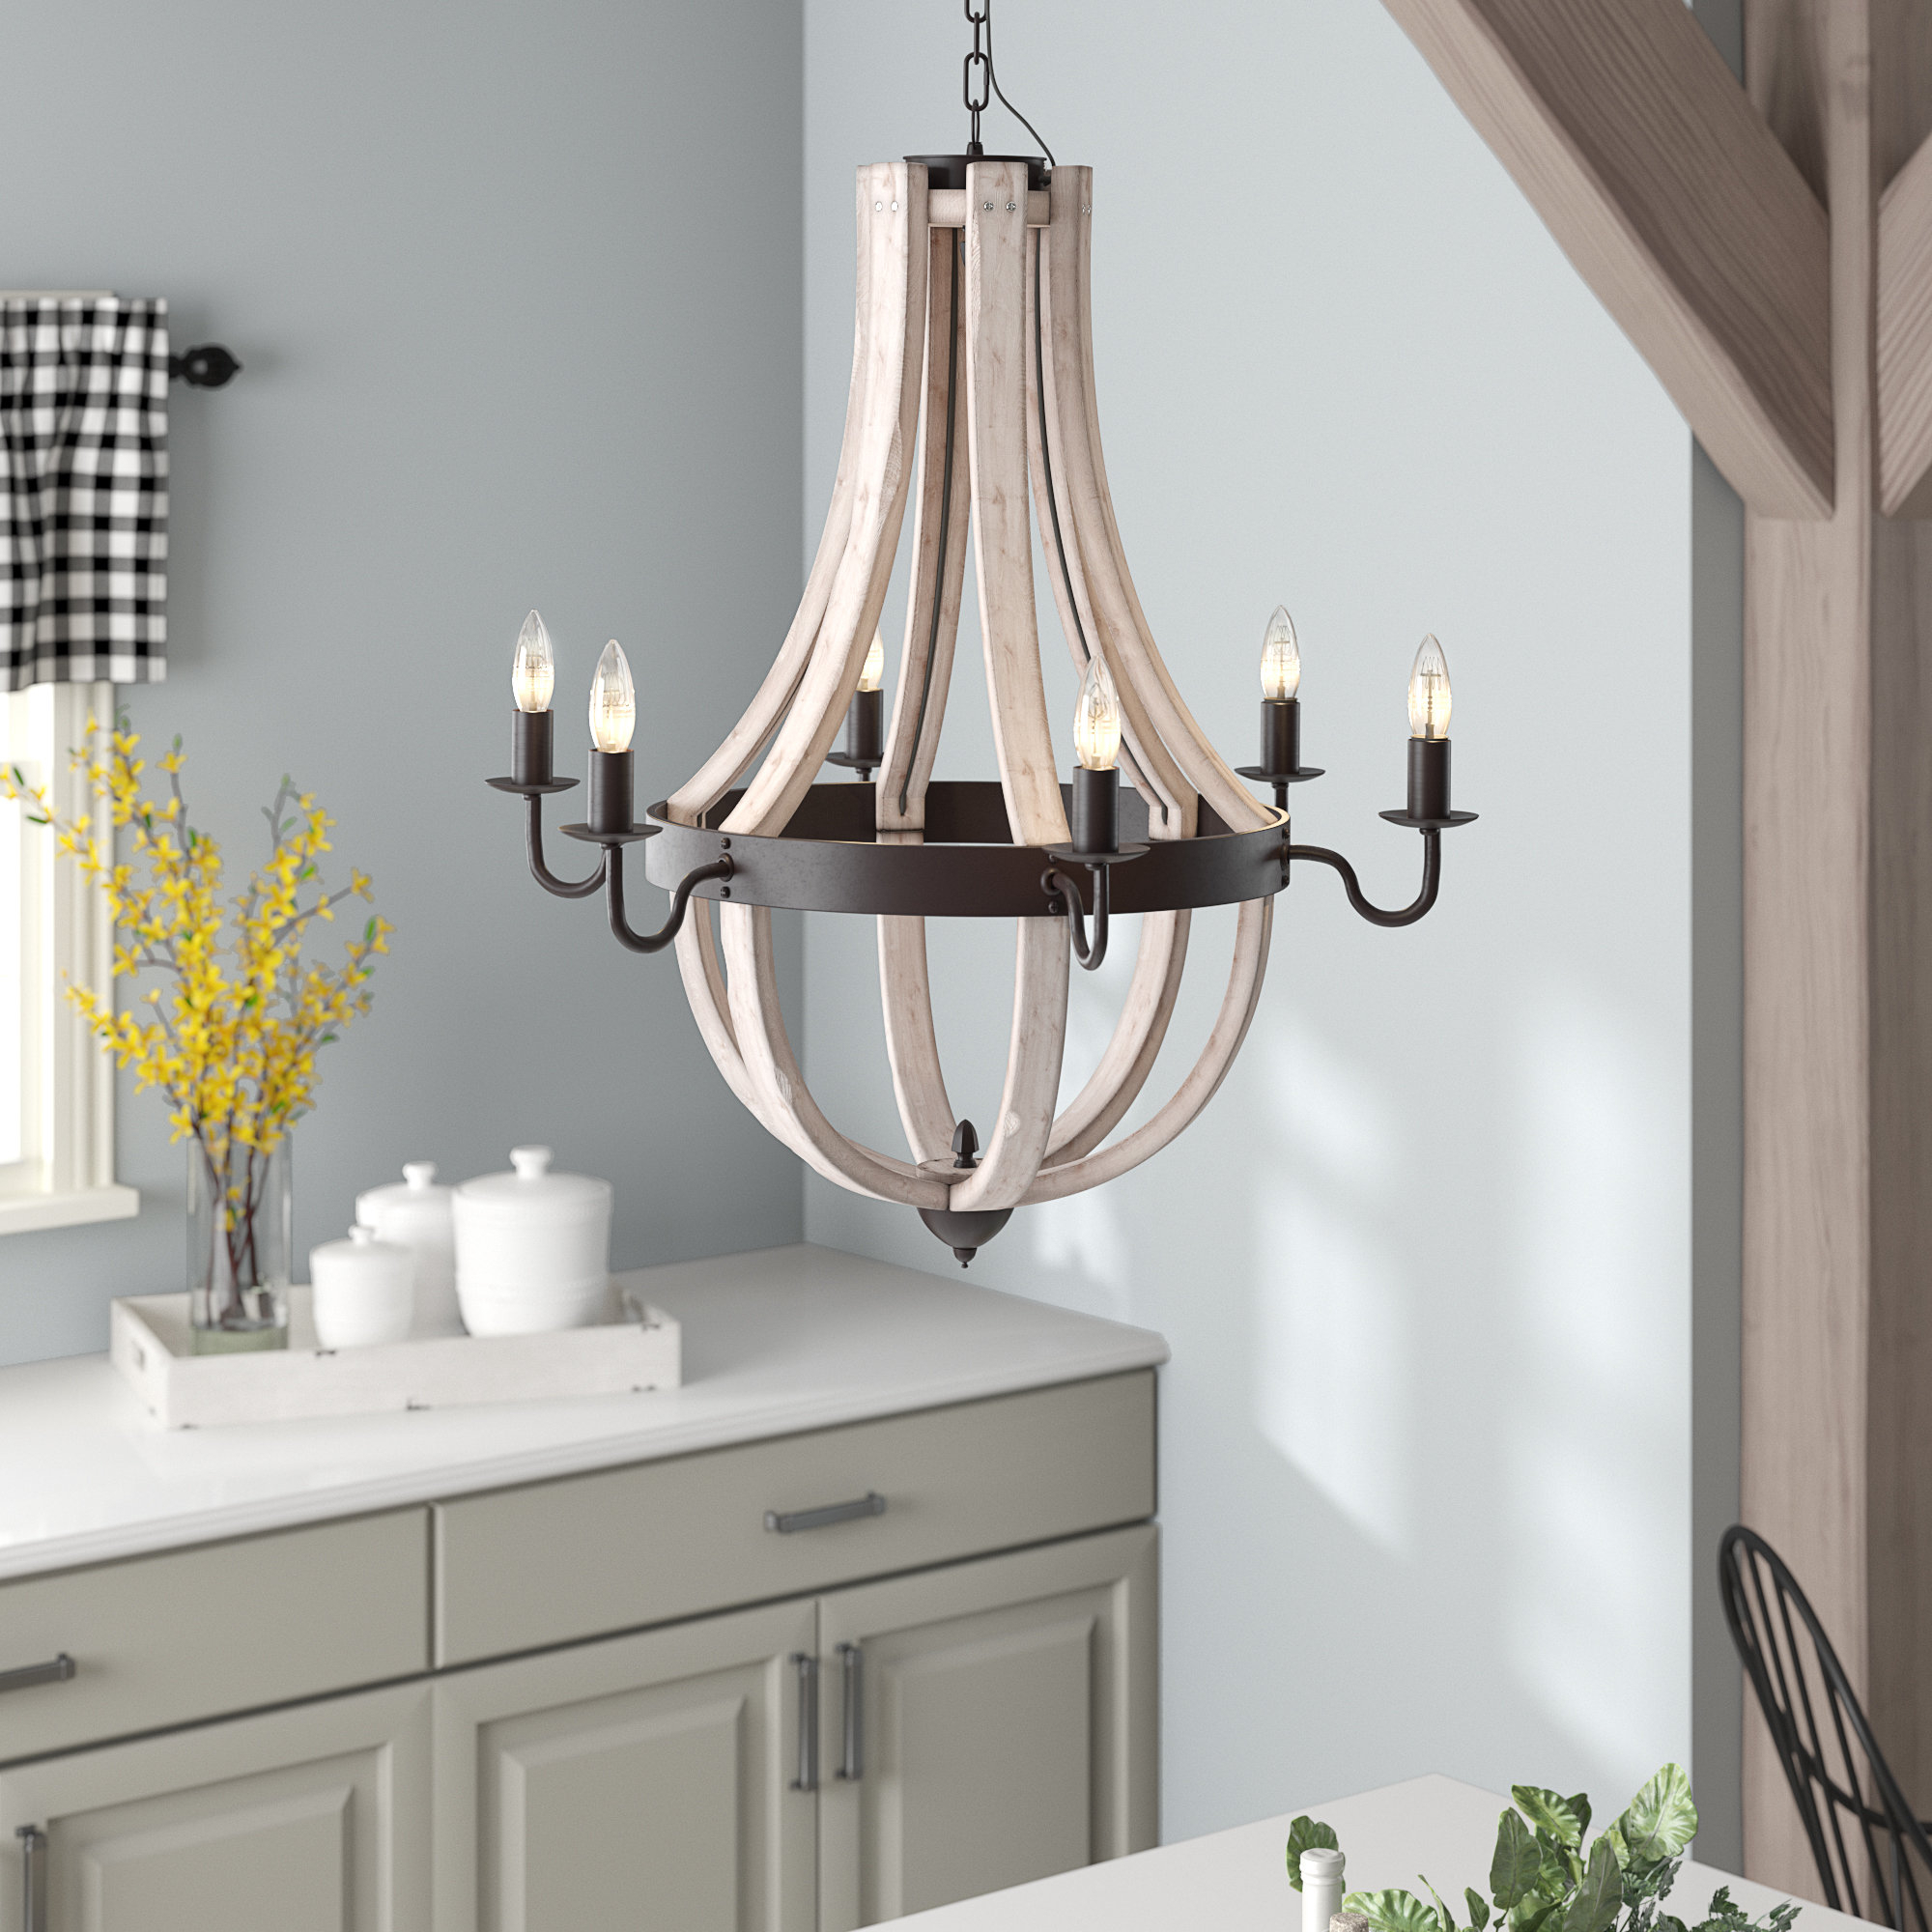 Kenna 5 Light Empire Chandeliers With Well Known August Grove Phifer 6 Light Empire Chandelier (View 9 of 20)